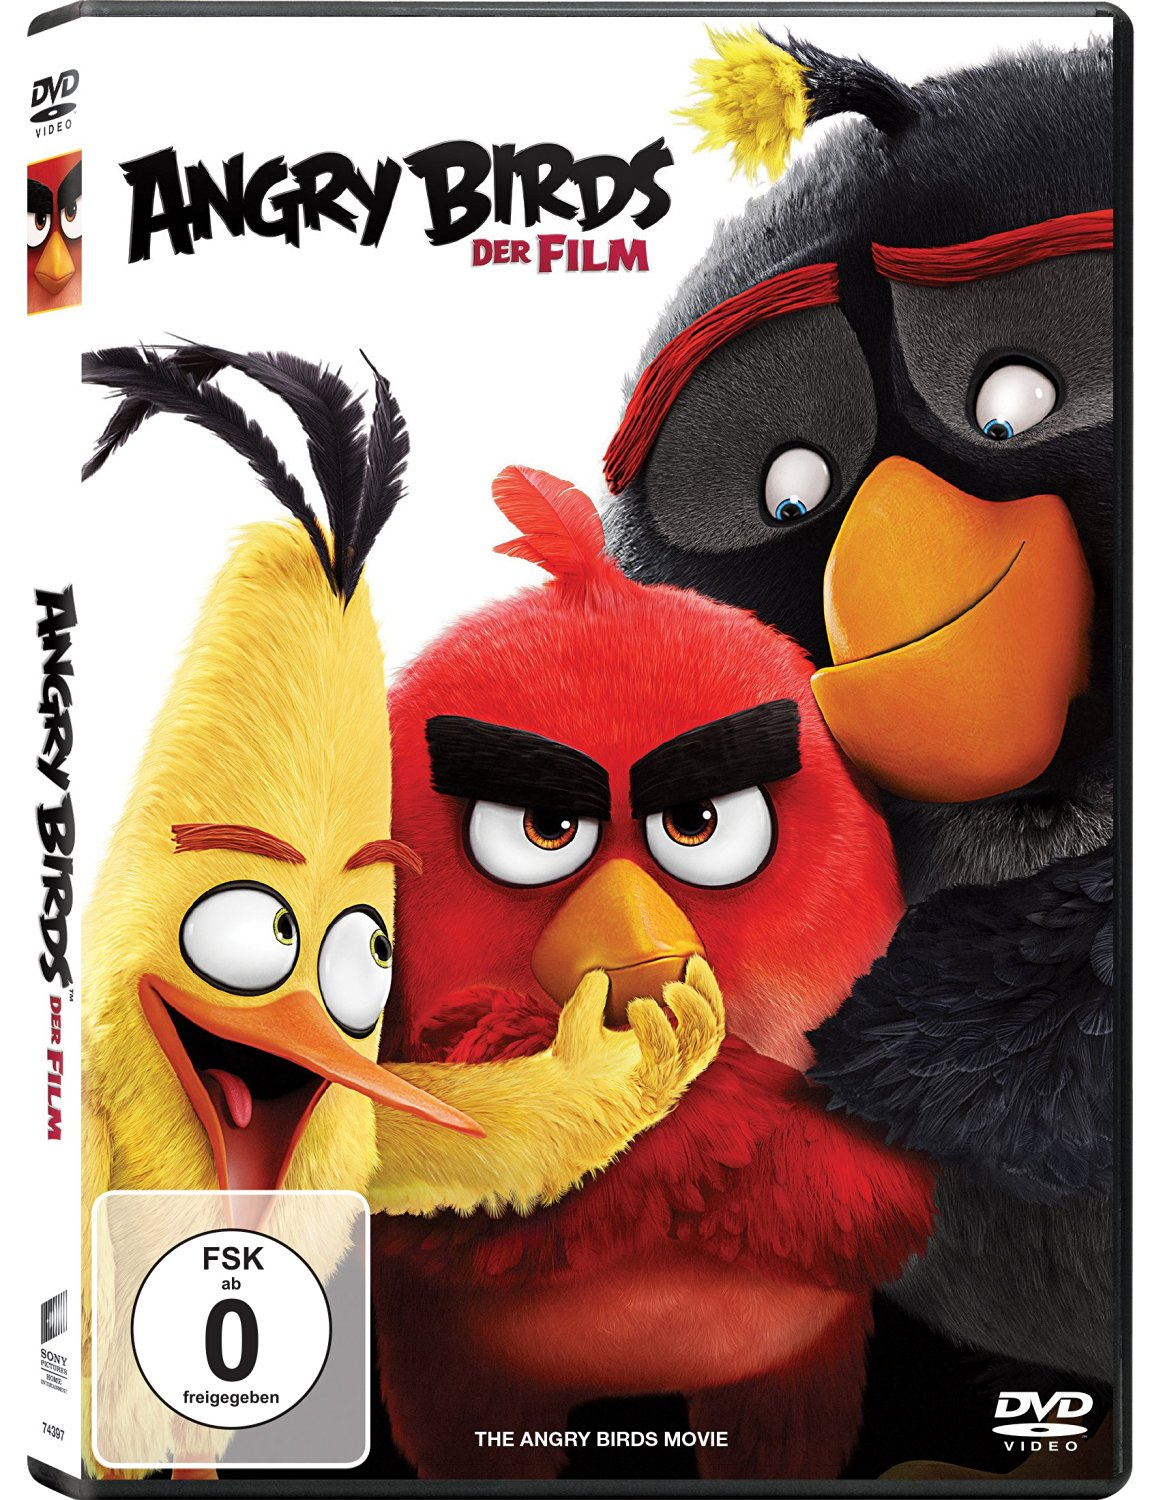 DVD-Cover von Angry Birds - Der Film